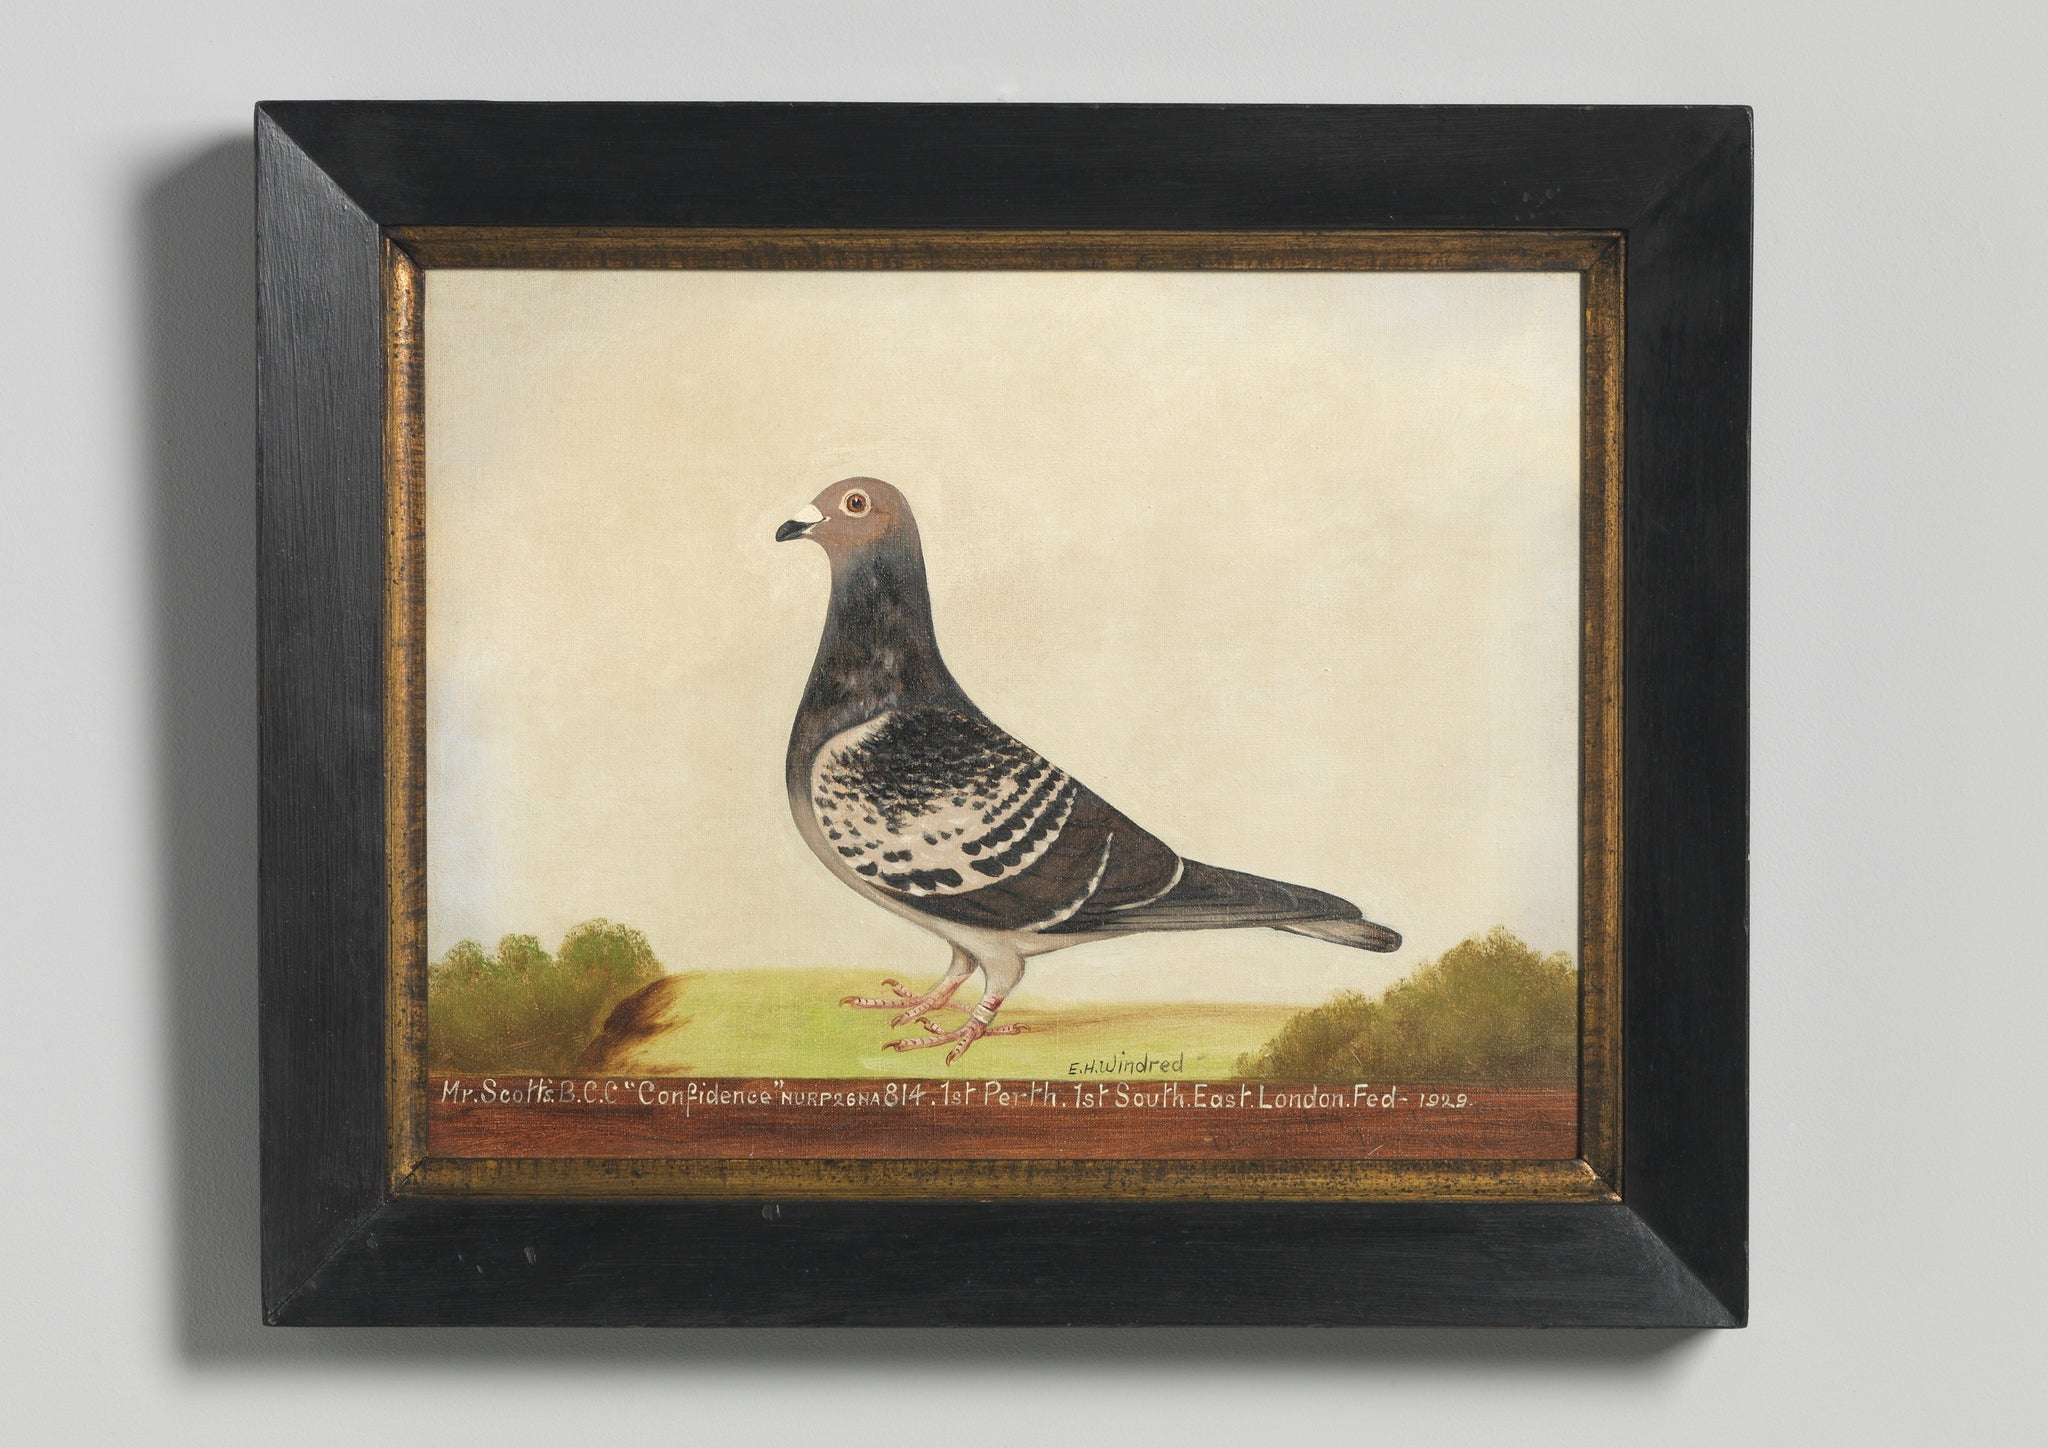 Pair of Racing Pigeon Portraits of 'Confidence'